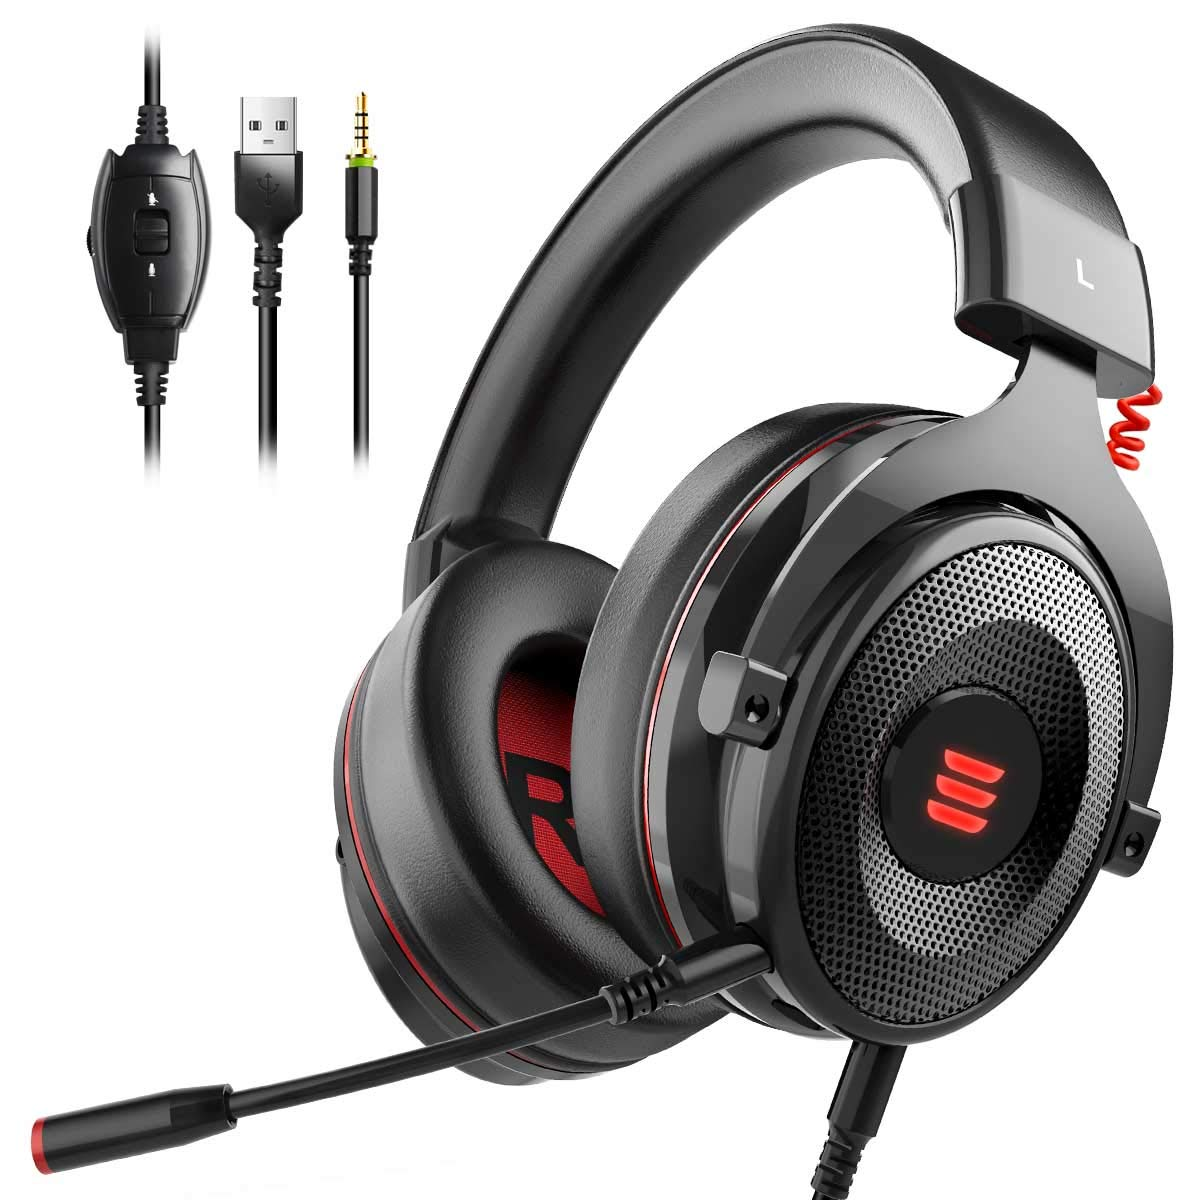 EKSA E900 Gaming Headset Xbox One Headset with 7.1 Surround Sound, PS4 Headset Noise Cancelling Over Ear Headphones with Mic&LED Light, Compatible with PC, PS4, Xbox One Controller, Nintendo Switch by EKSA